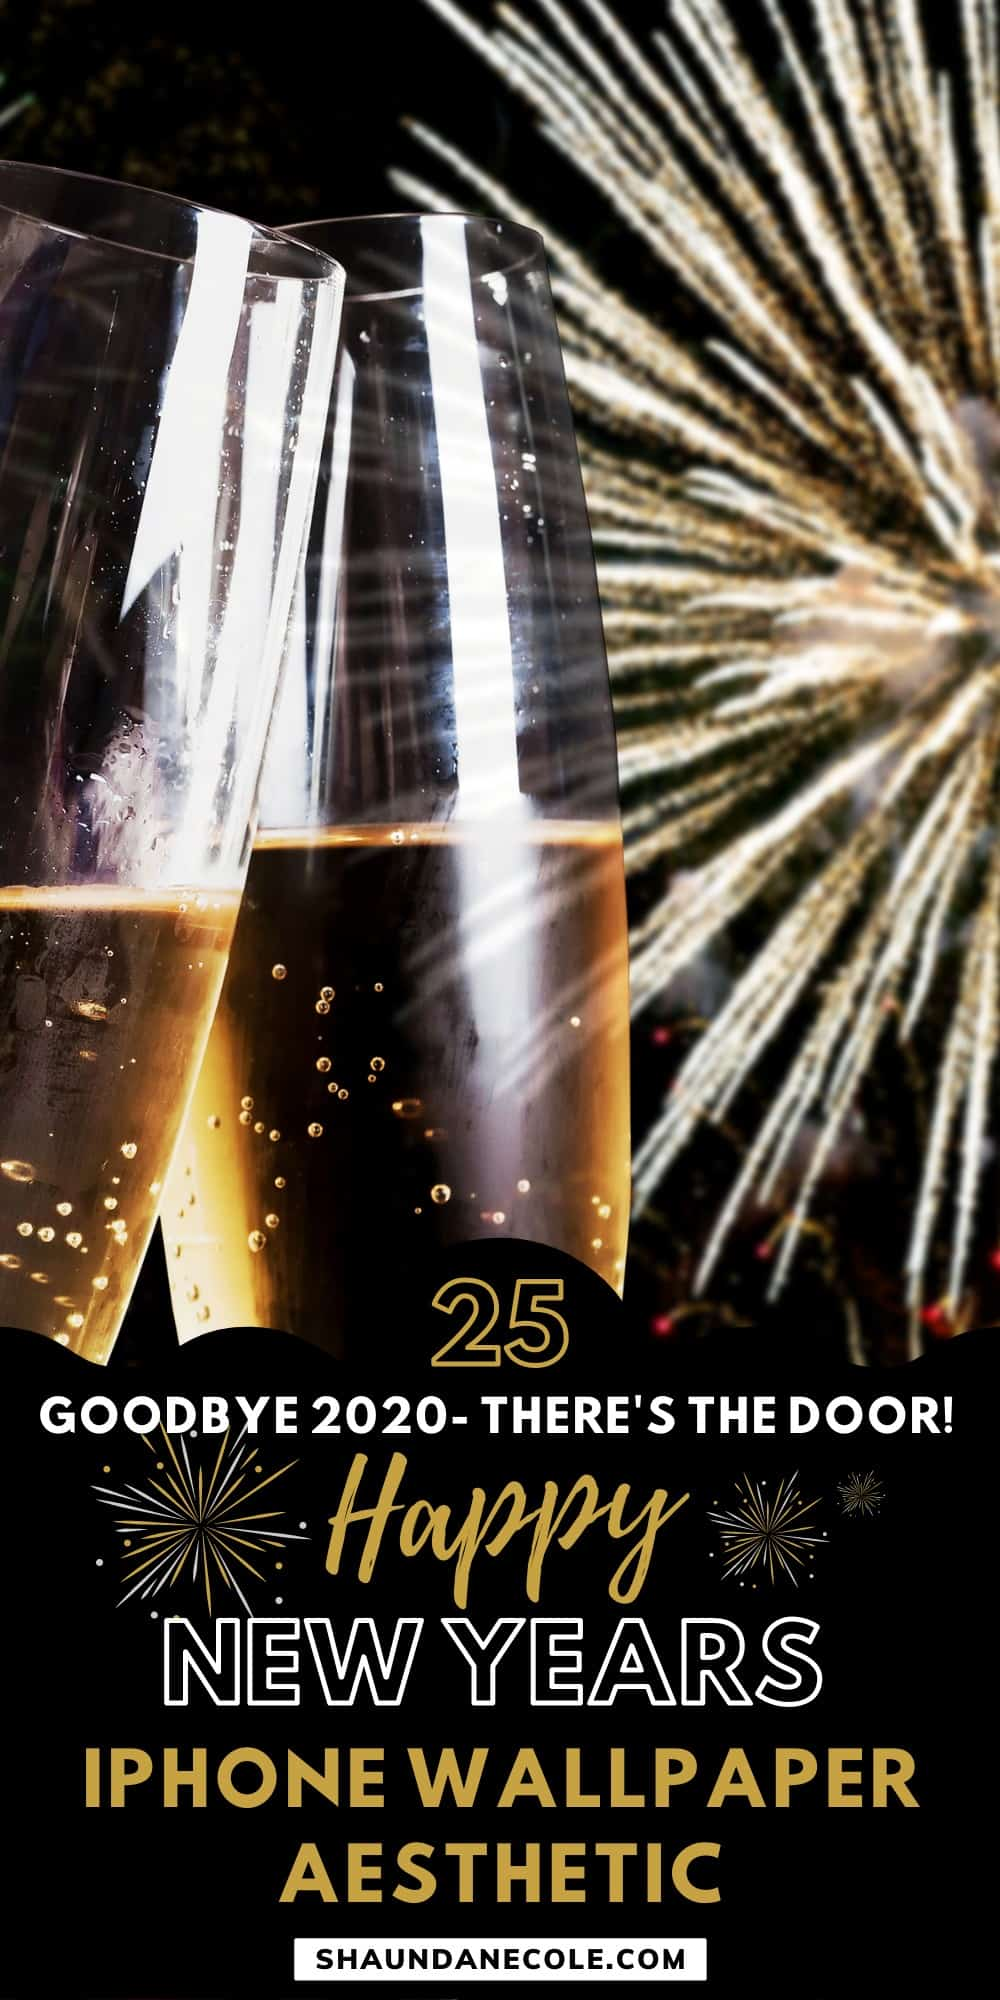 Goodbye 2020- There's The Door!